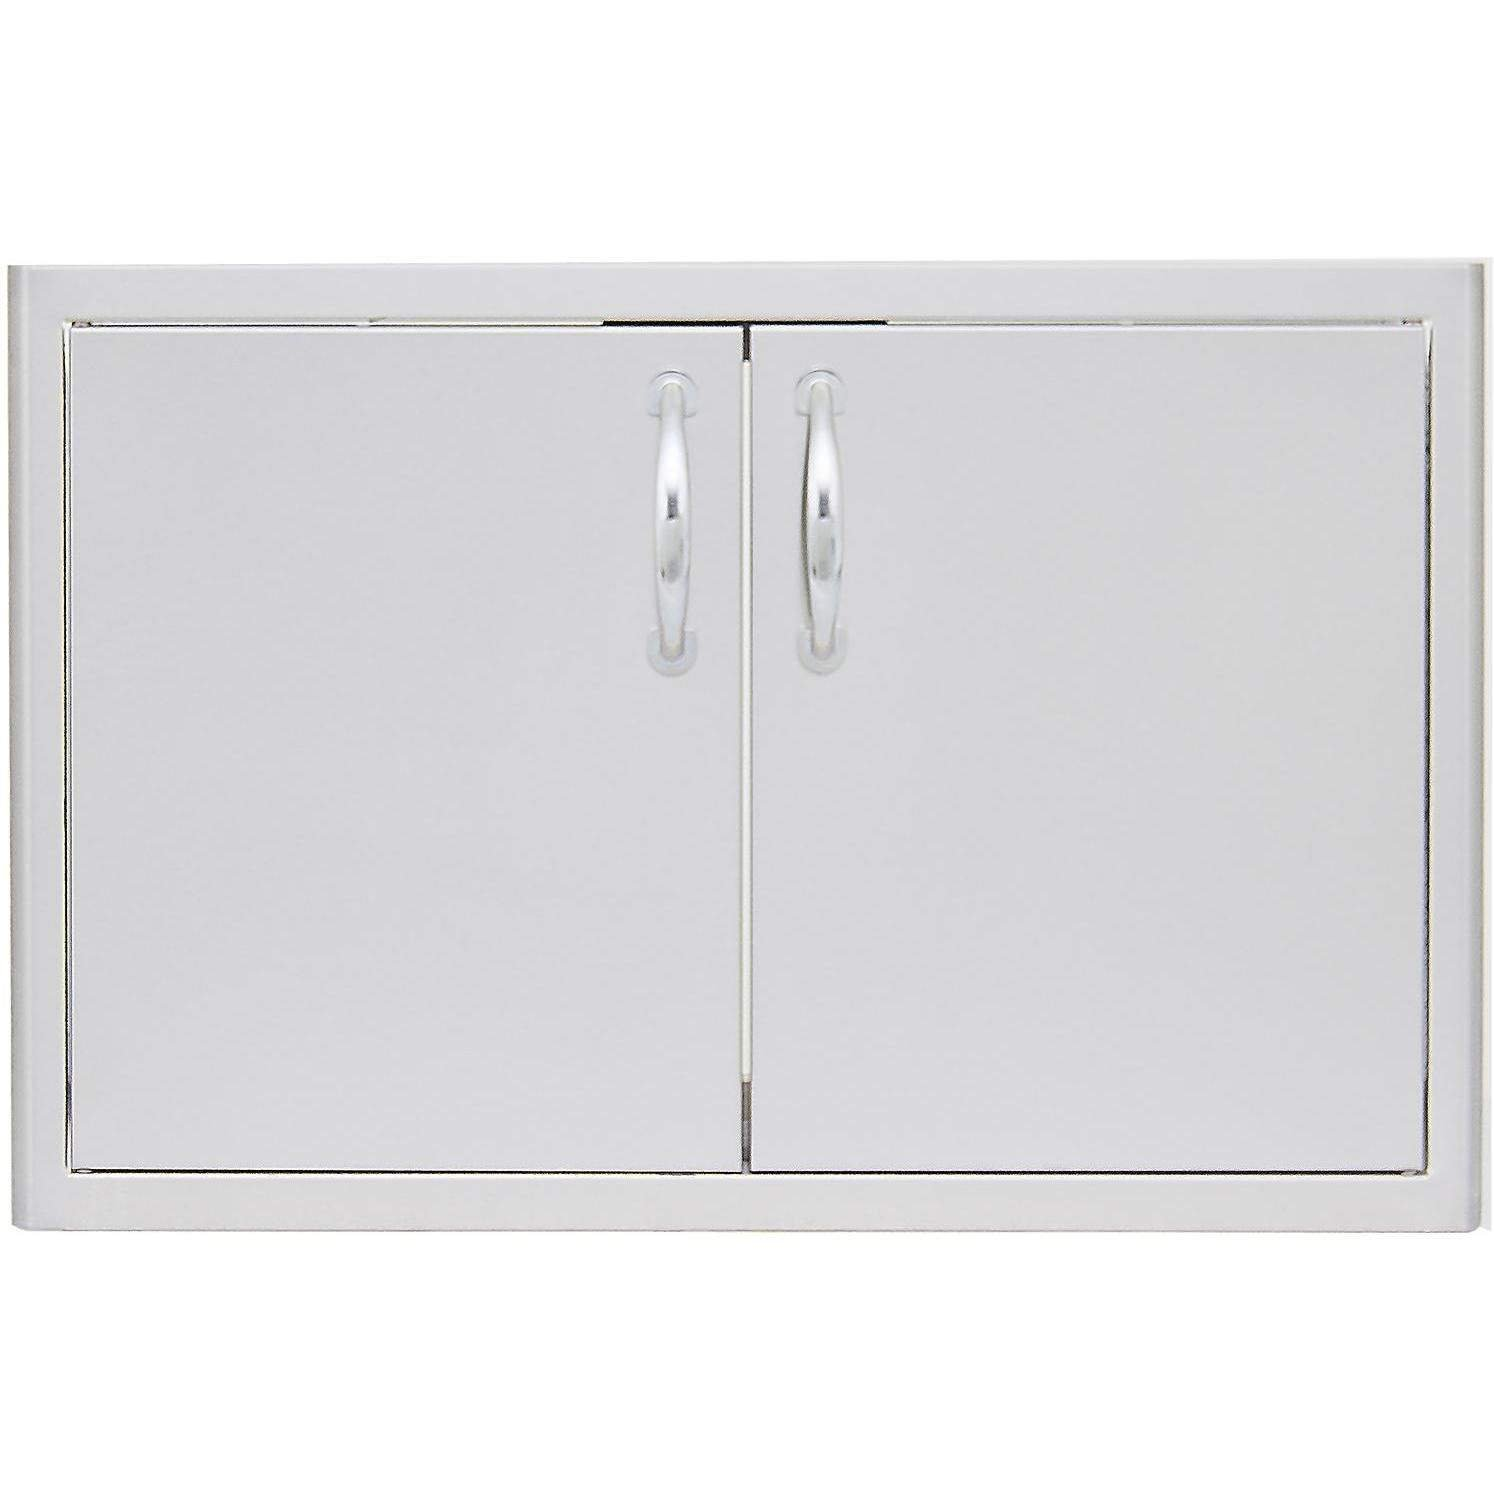 Double Access Door with Paper Towel Dispenser Size: 32'' W